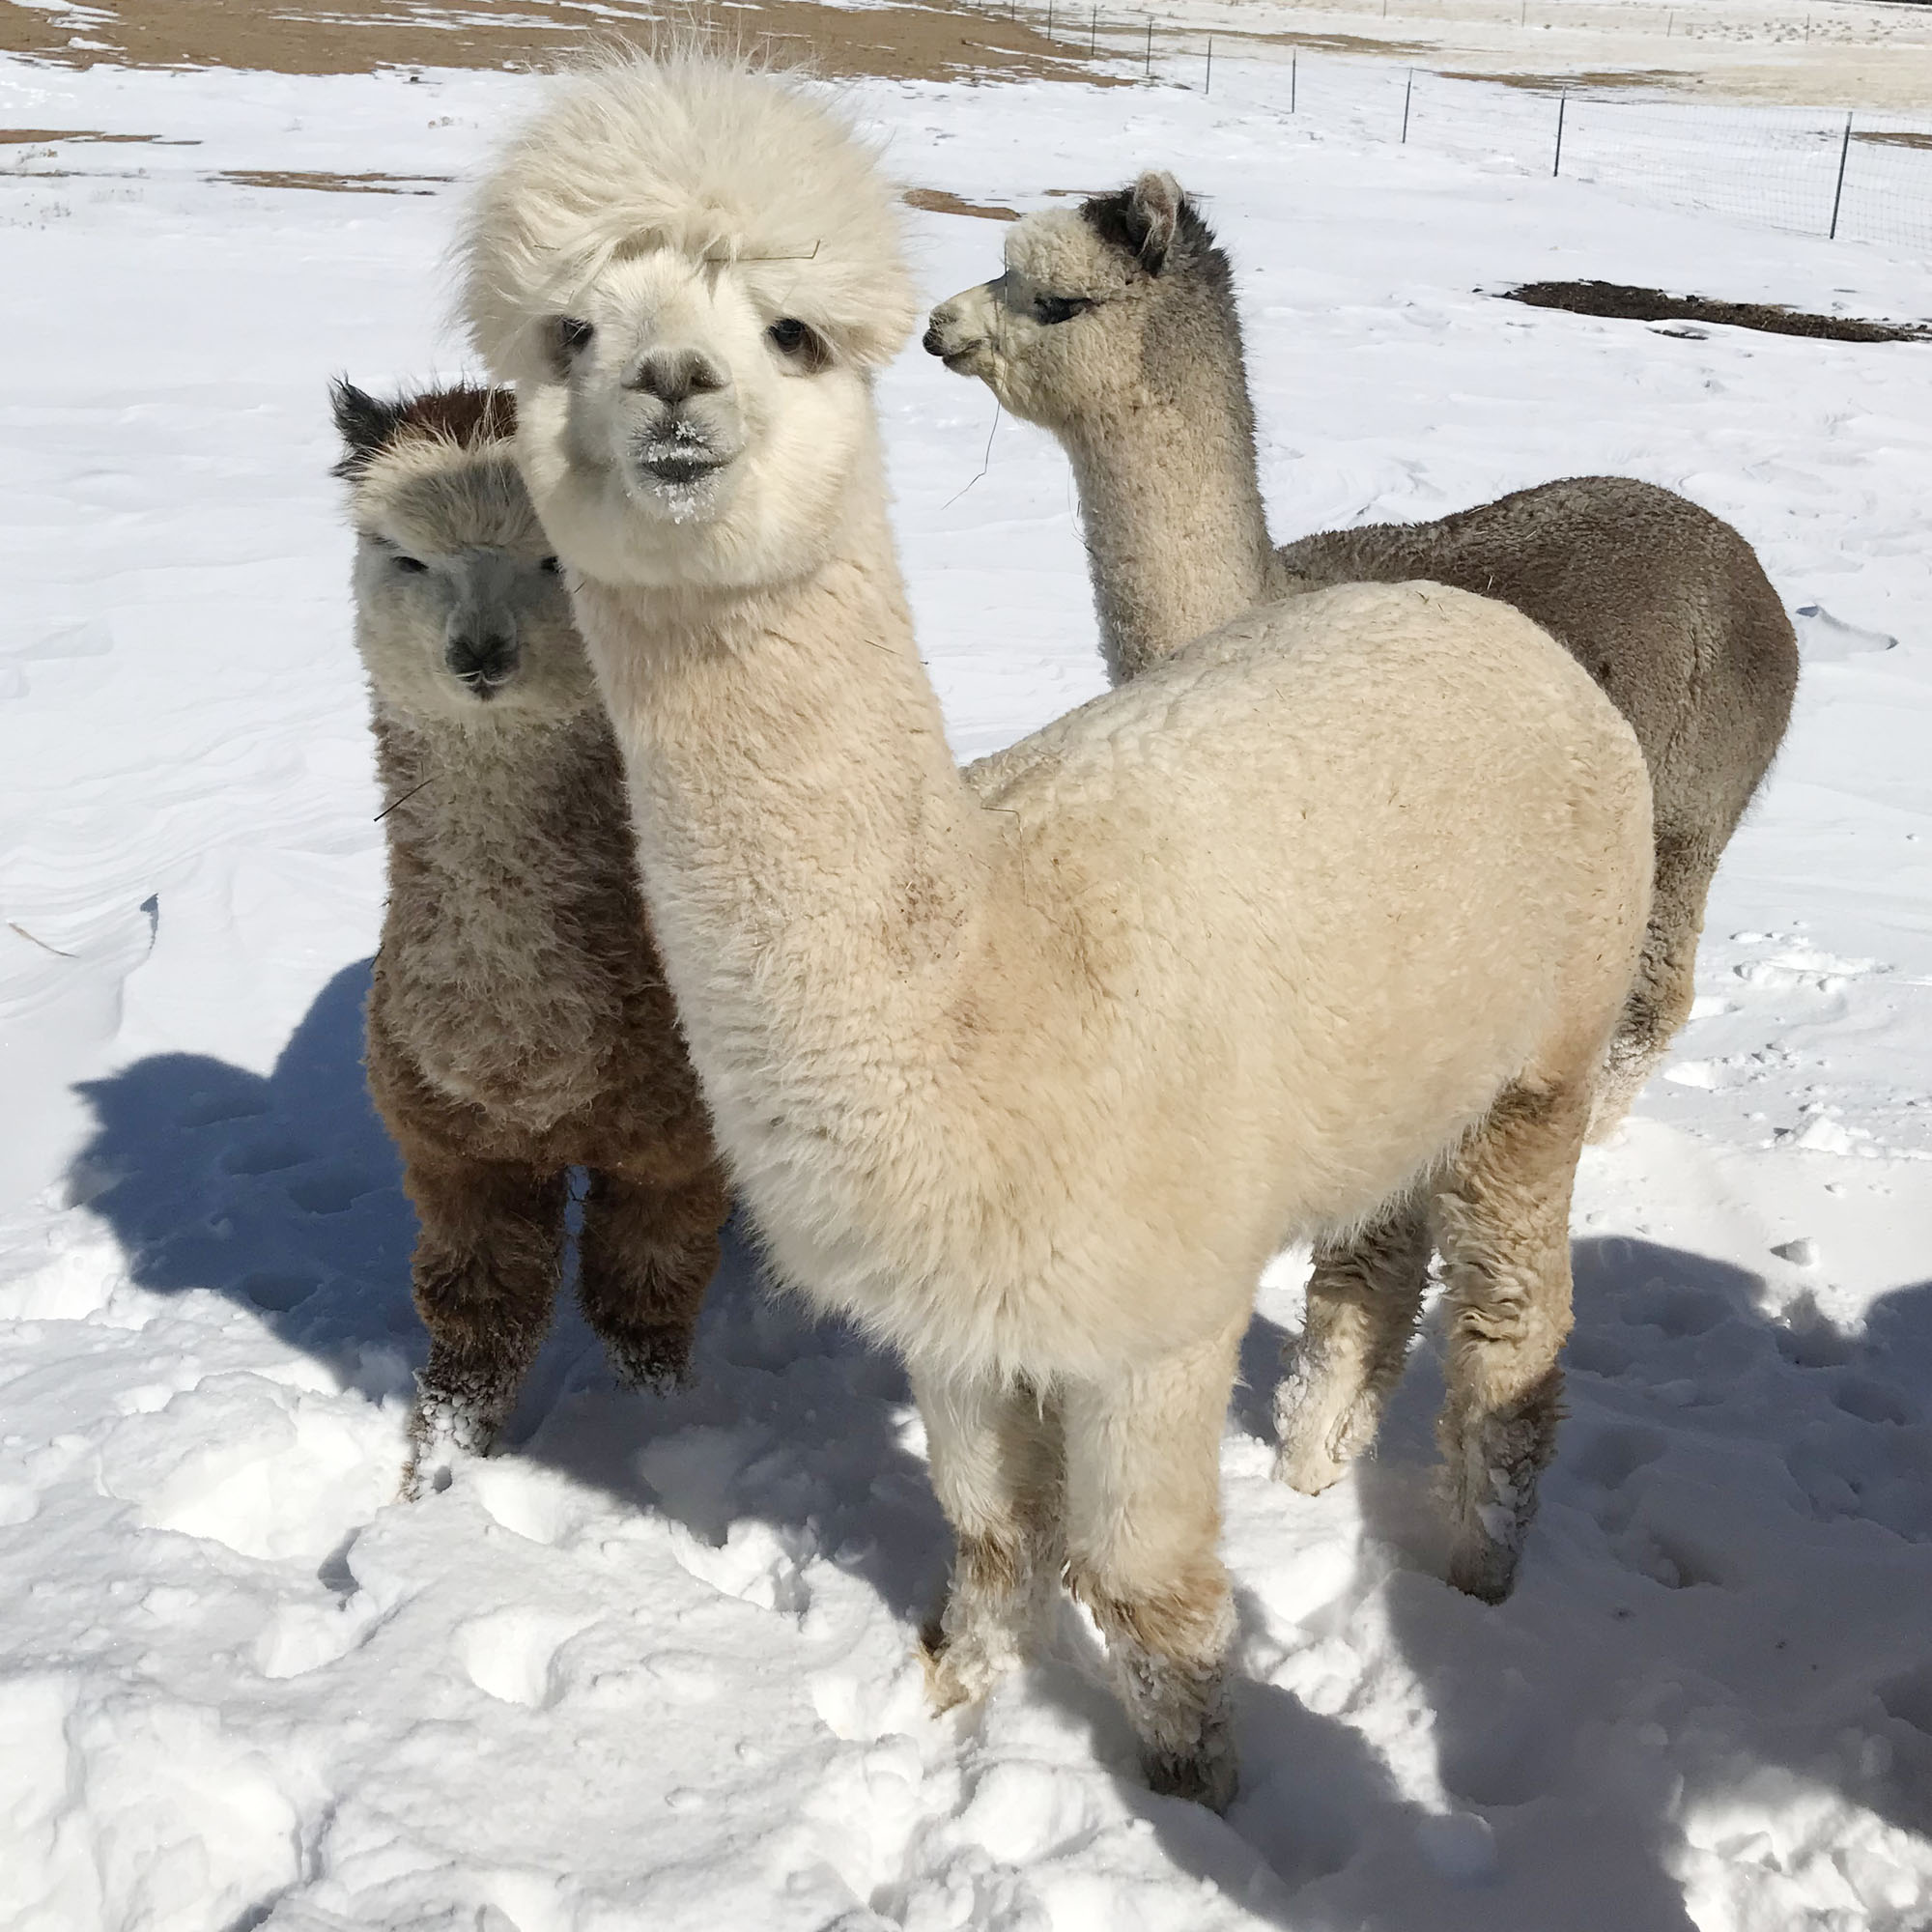 Lennon the alpaca